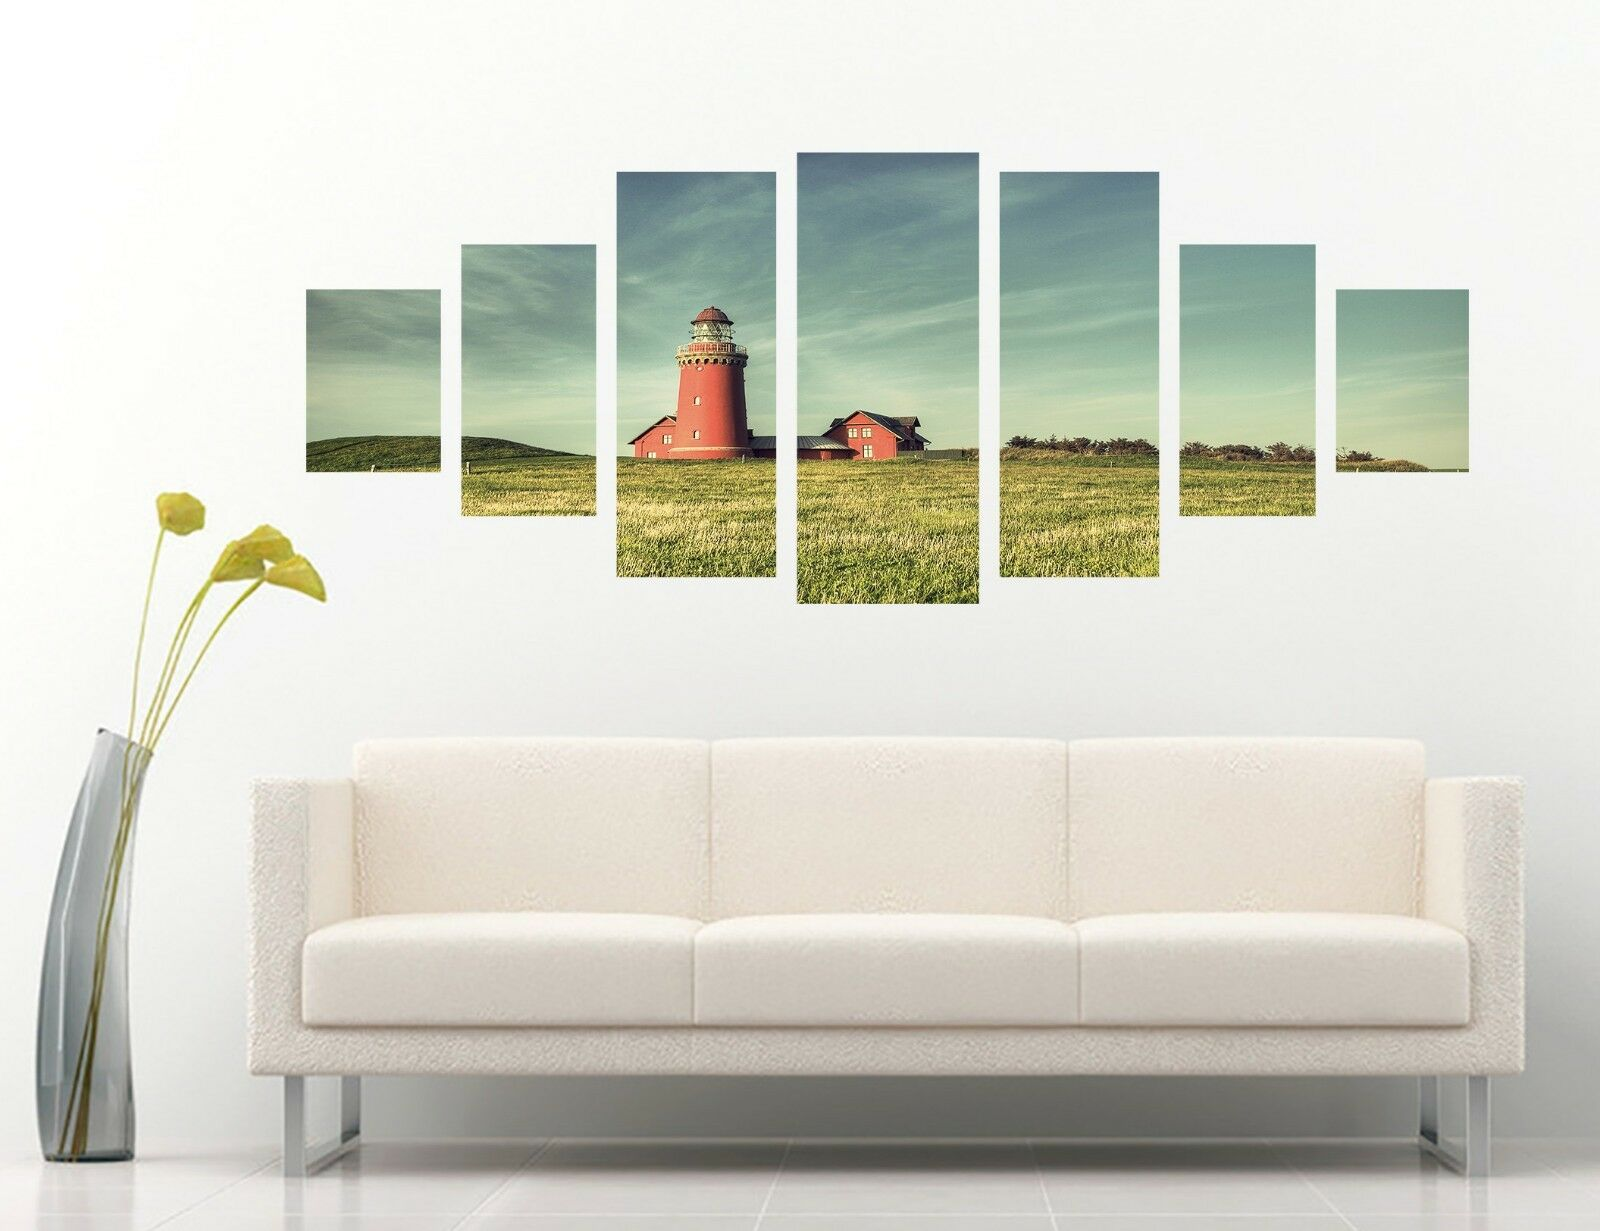 3D Lighthouse Lawn 478 Unframed Print Wall Paper Decal Wall Deco Indoor AJ Wall